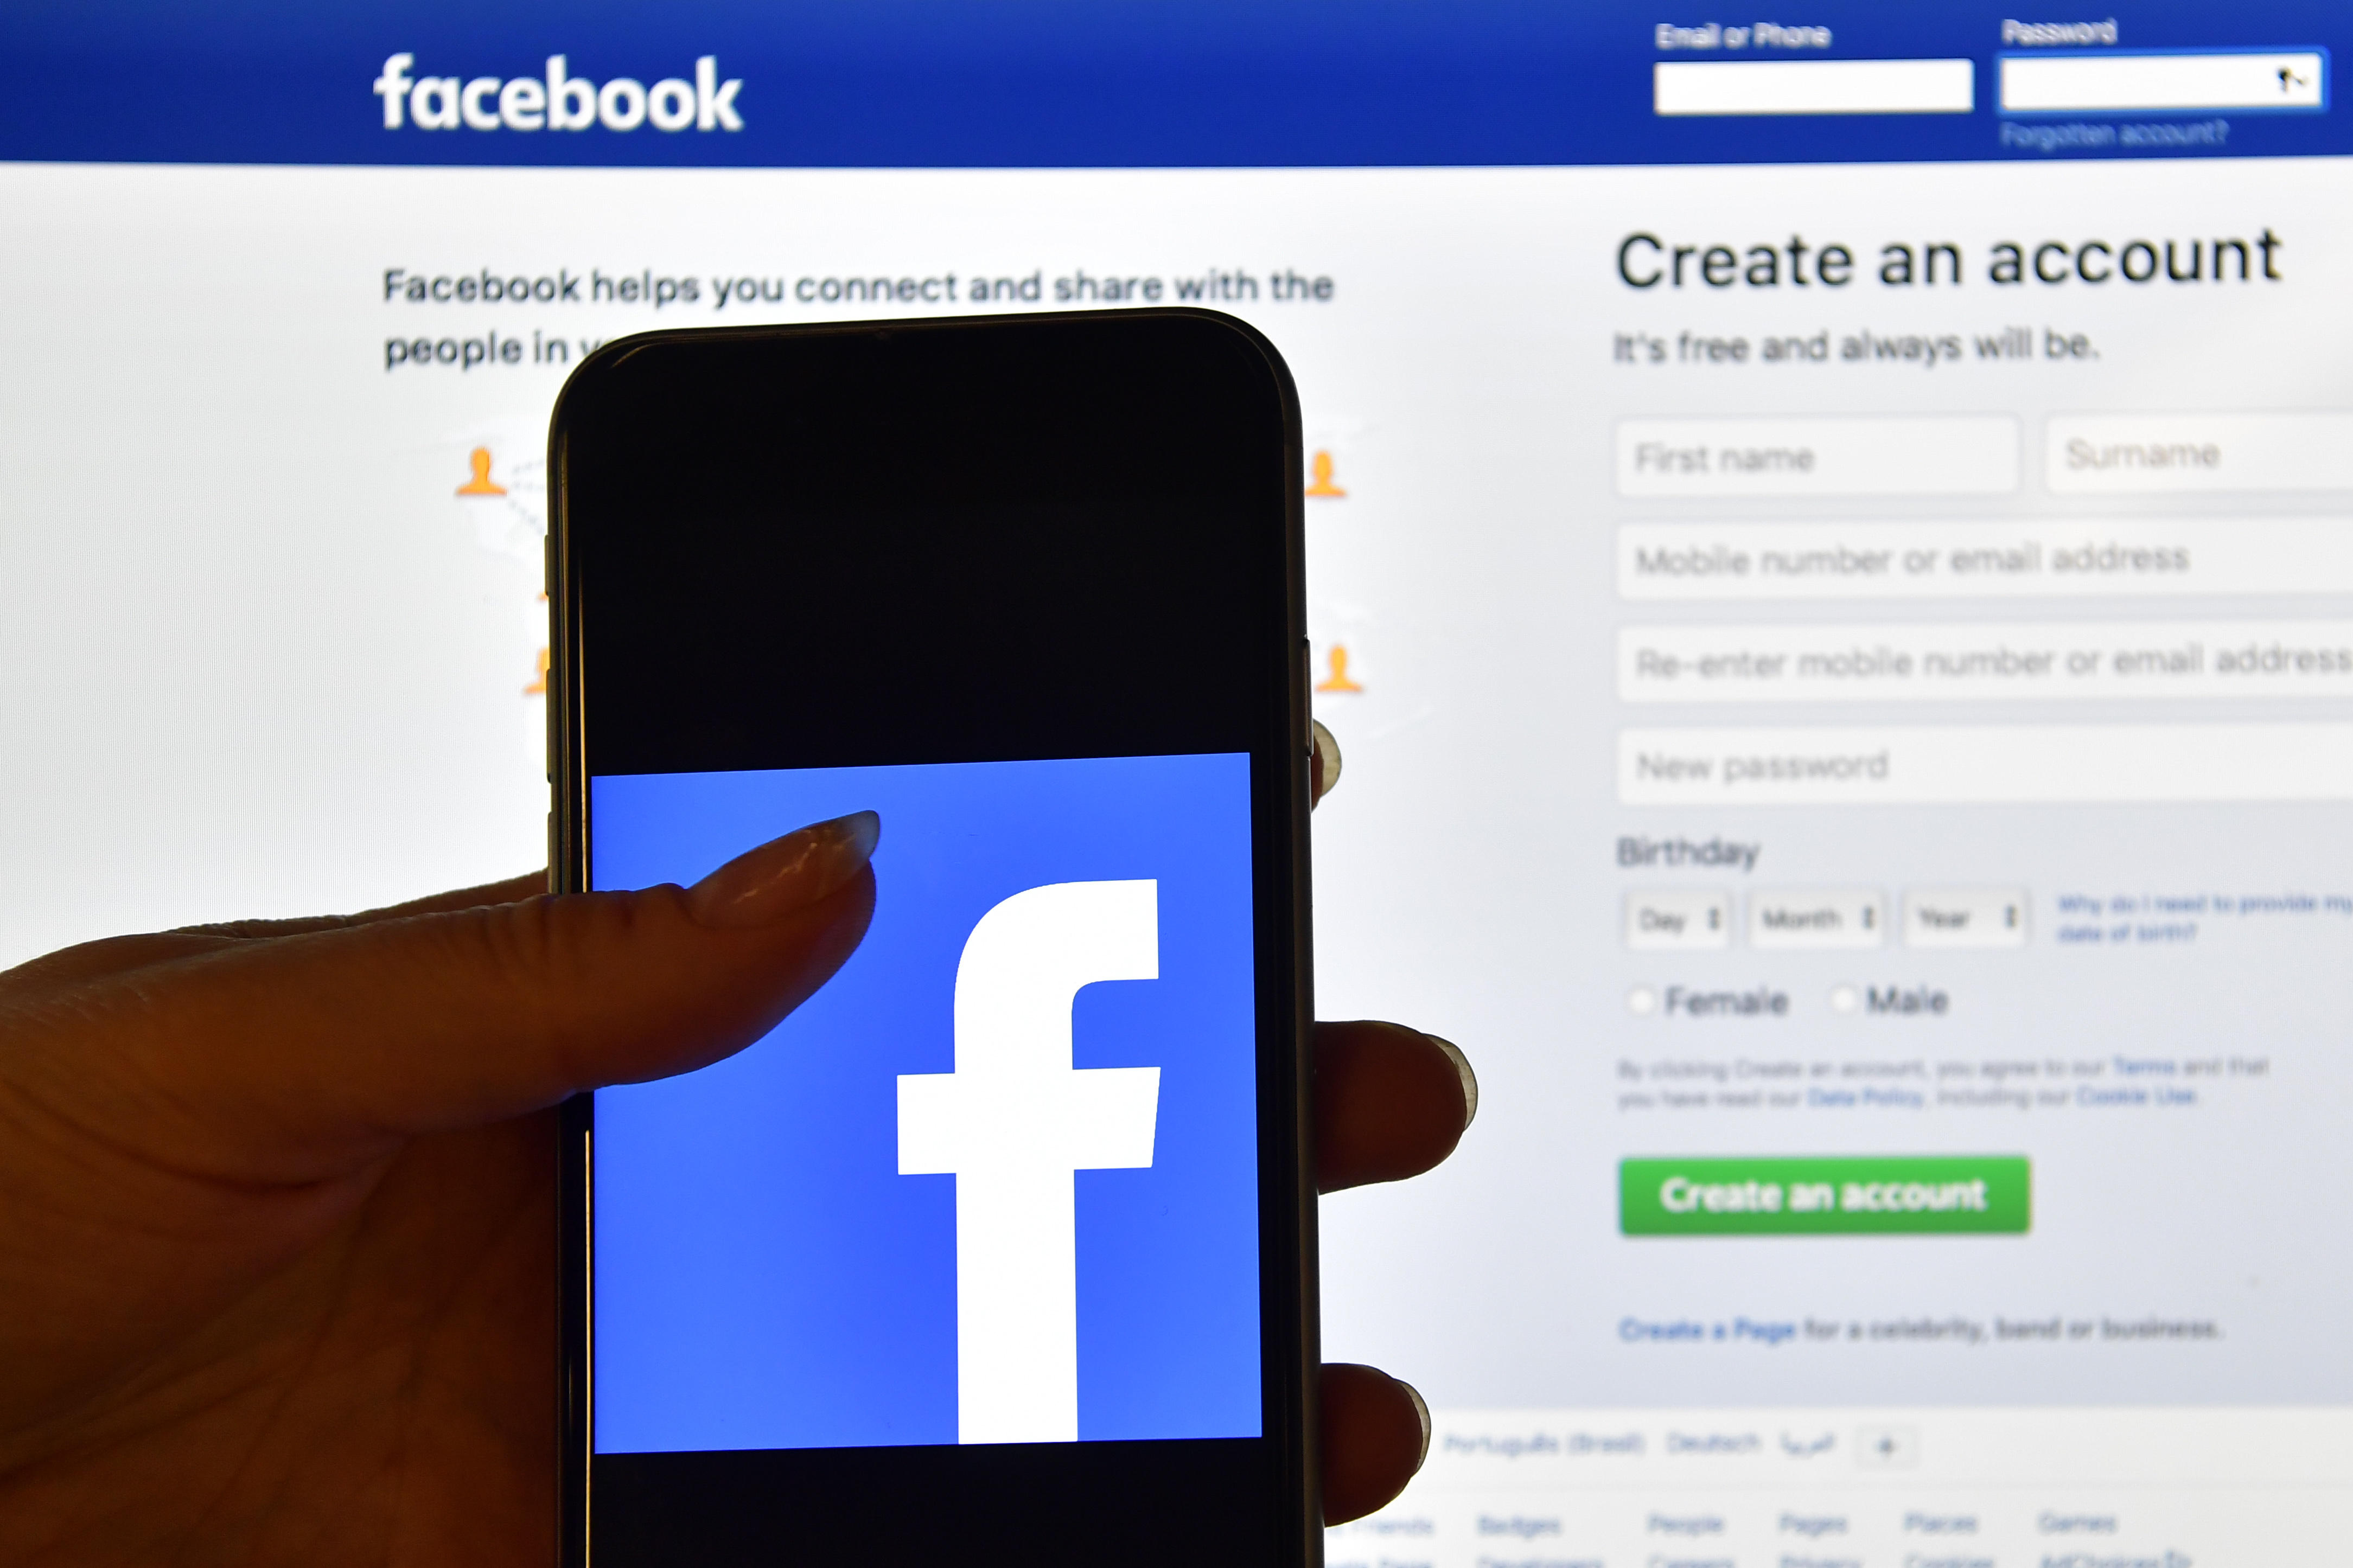 The Facebook App Is Steadily Losing Users As Privacy